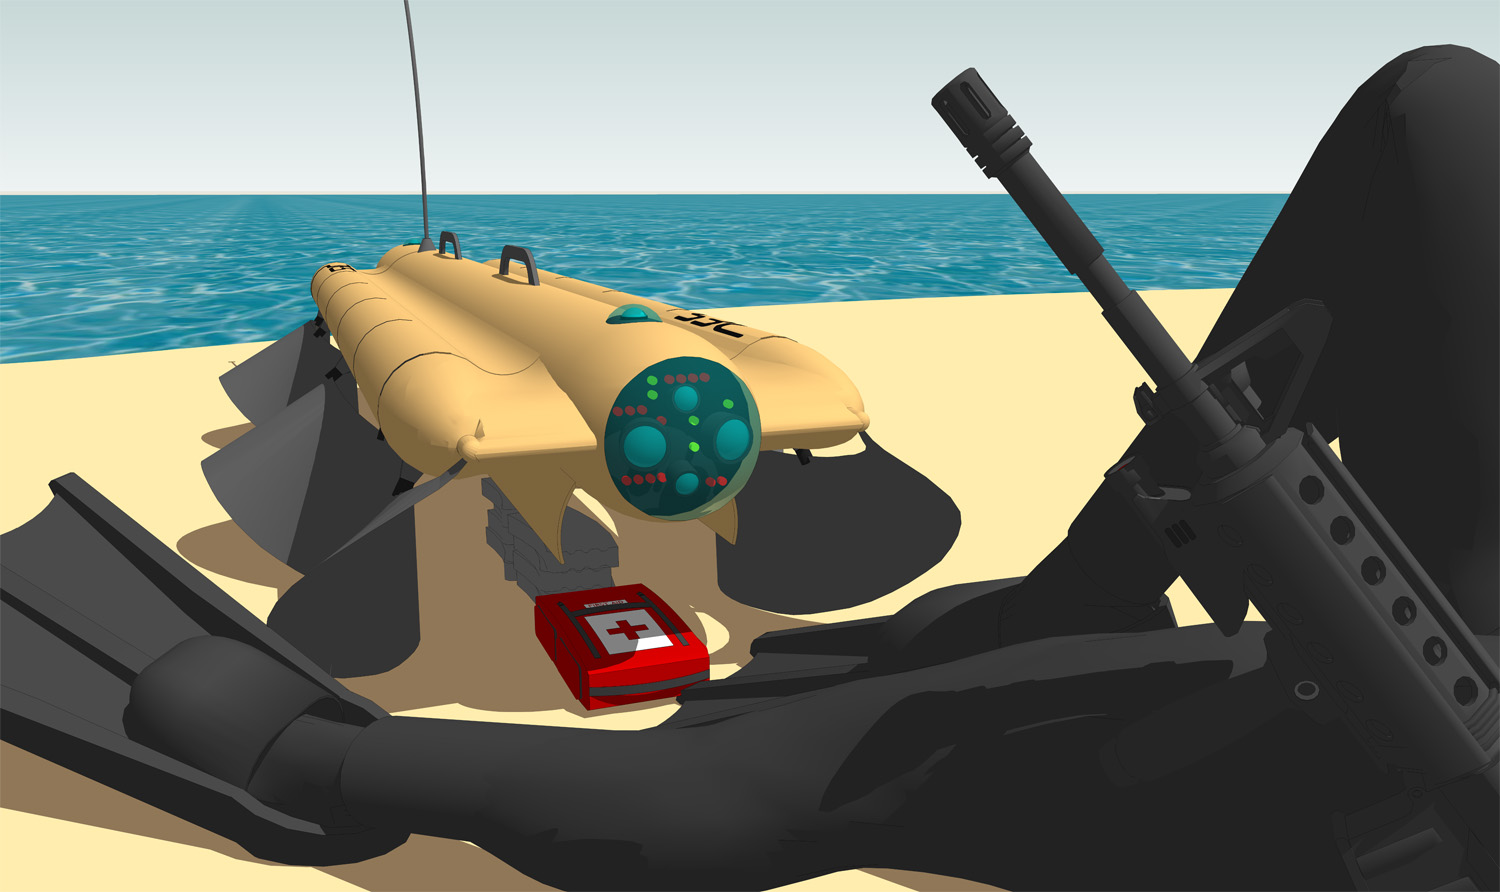 One mission set for the Velox robot could be amphibious resupply, with ammunition and medical supplies carried inside its body. (Pliant Energy Systems)